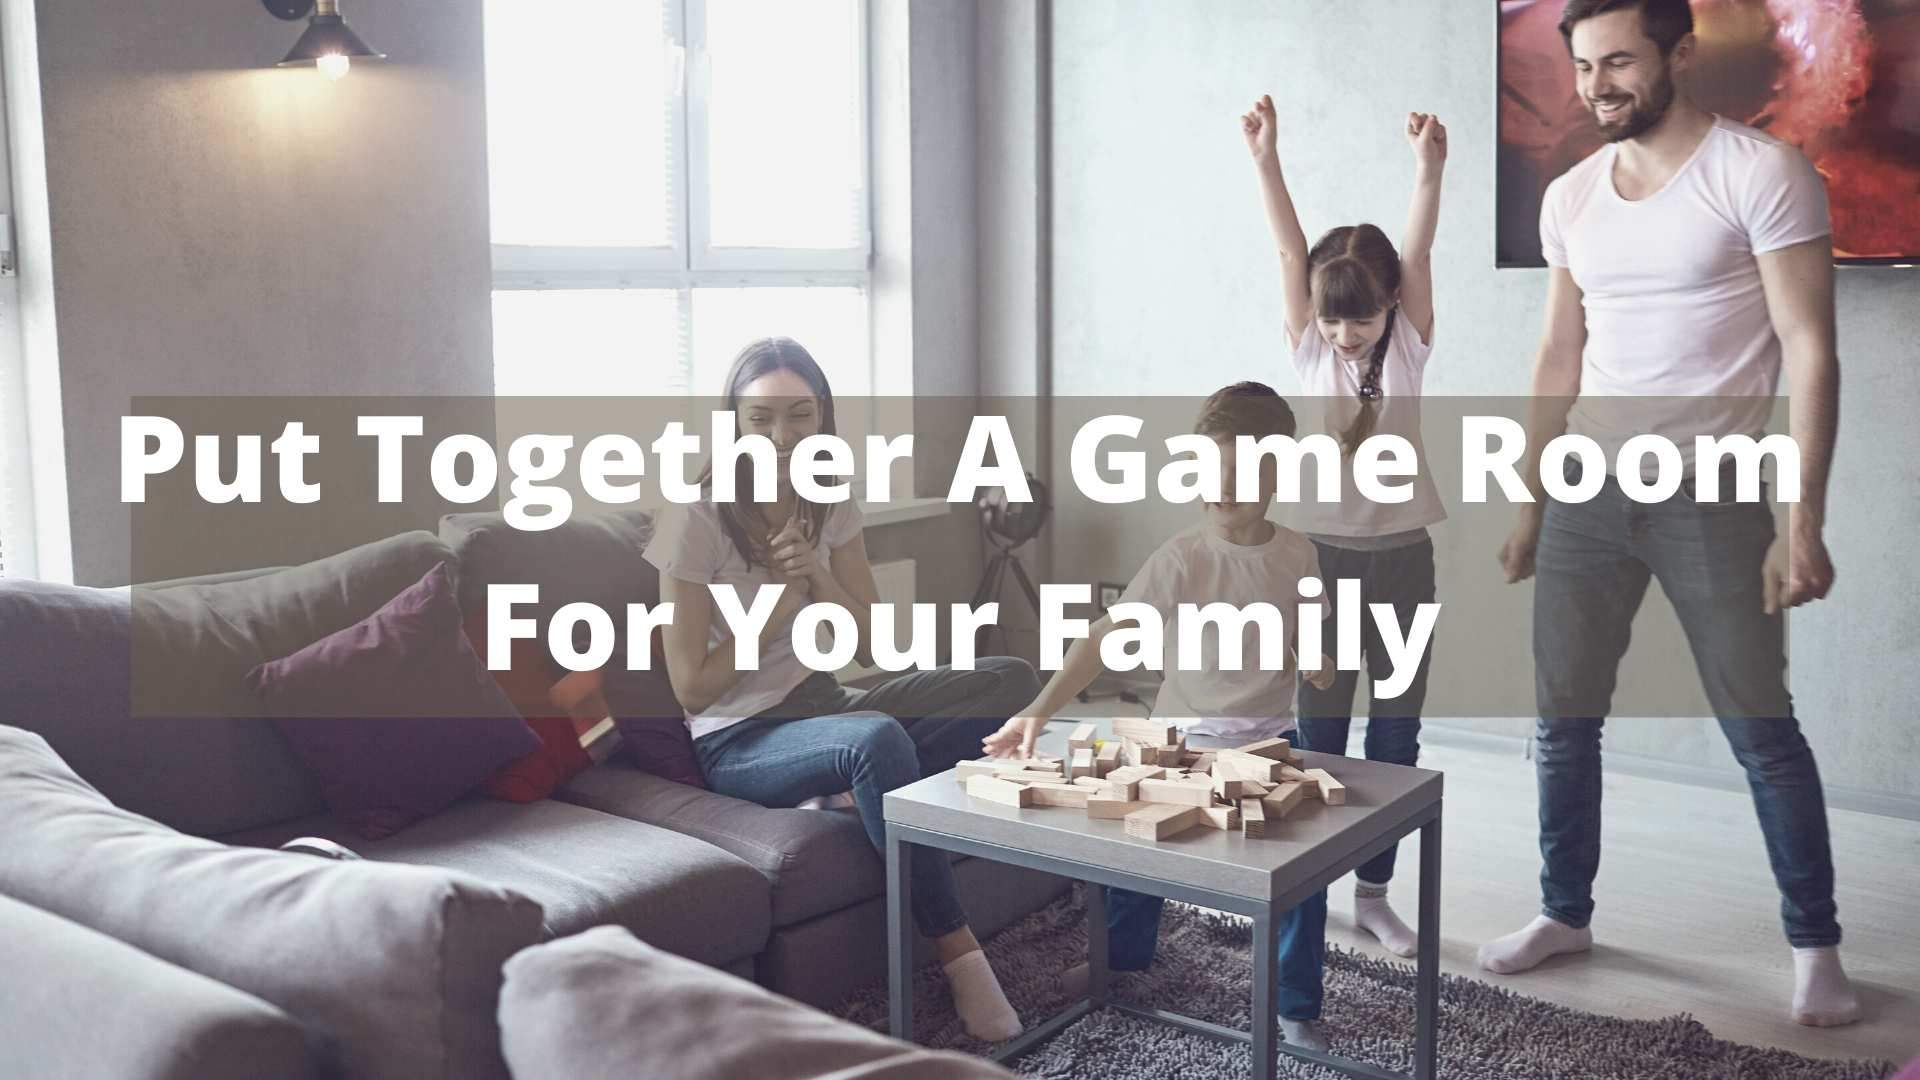 Put Together A Game Room For Your Family